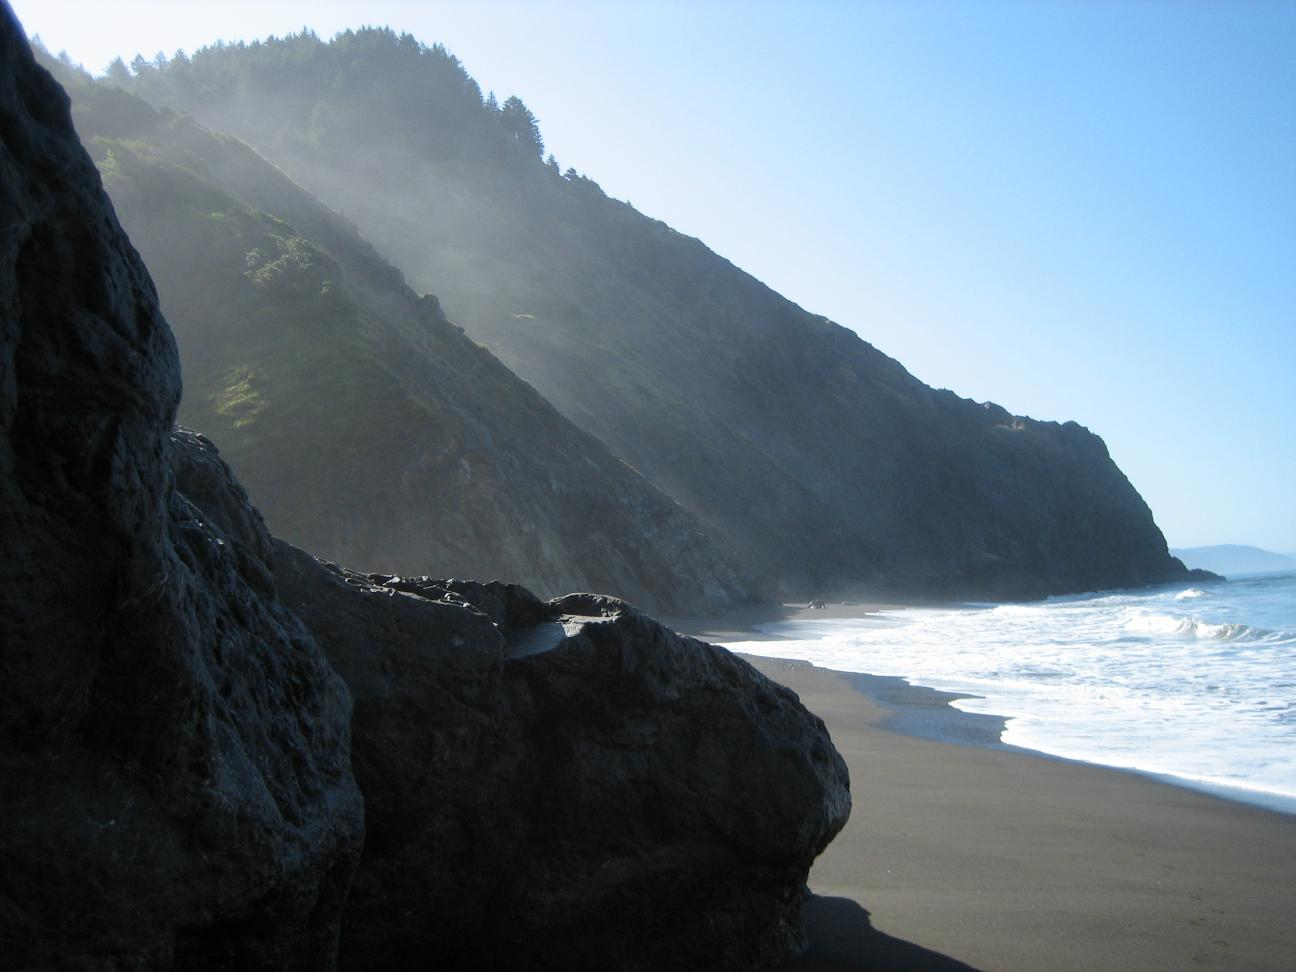 Exploring the Lost Coast of Northern California